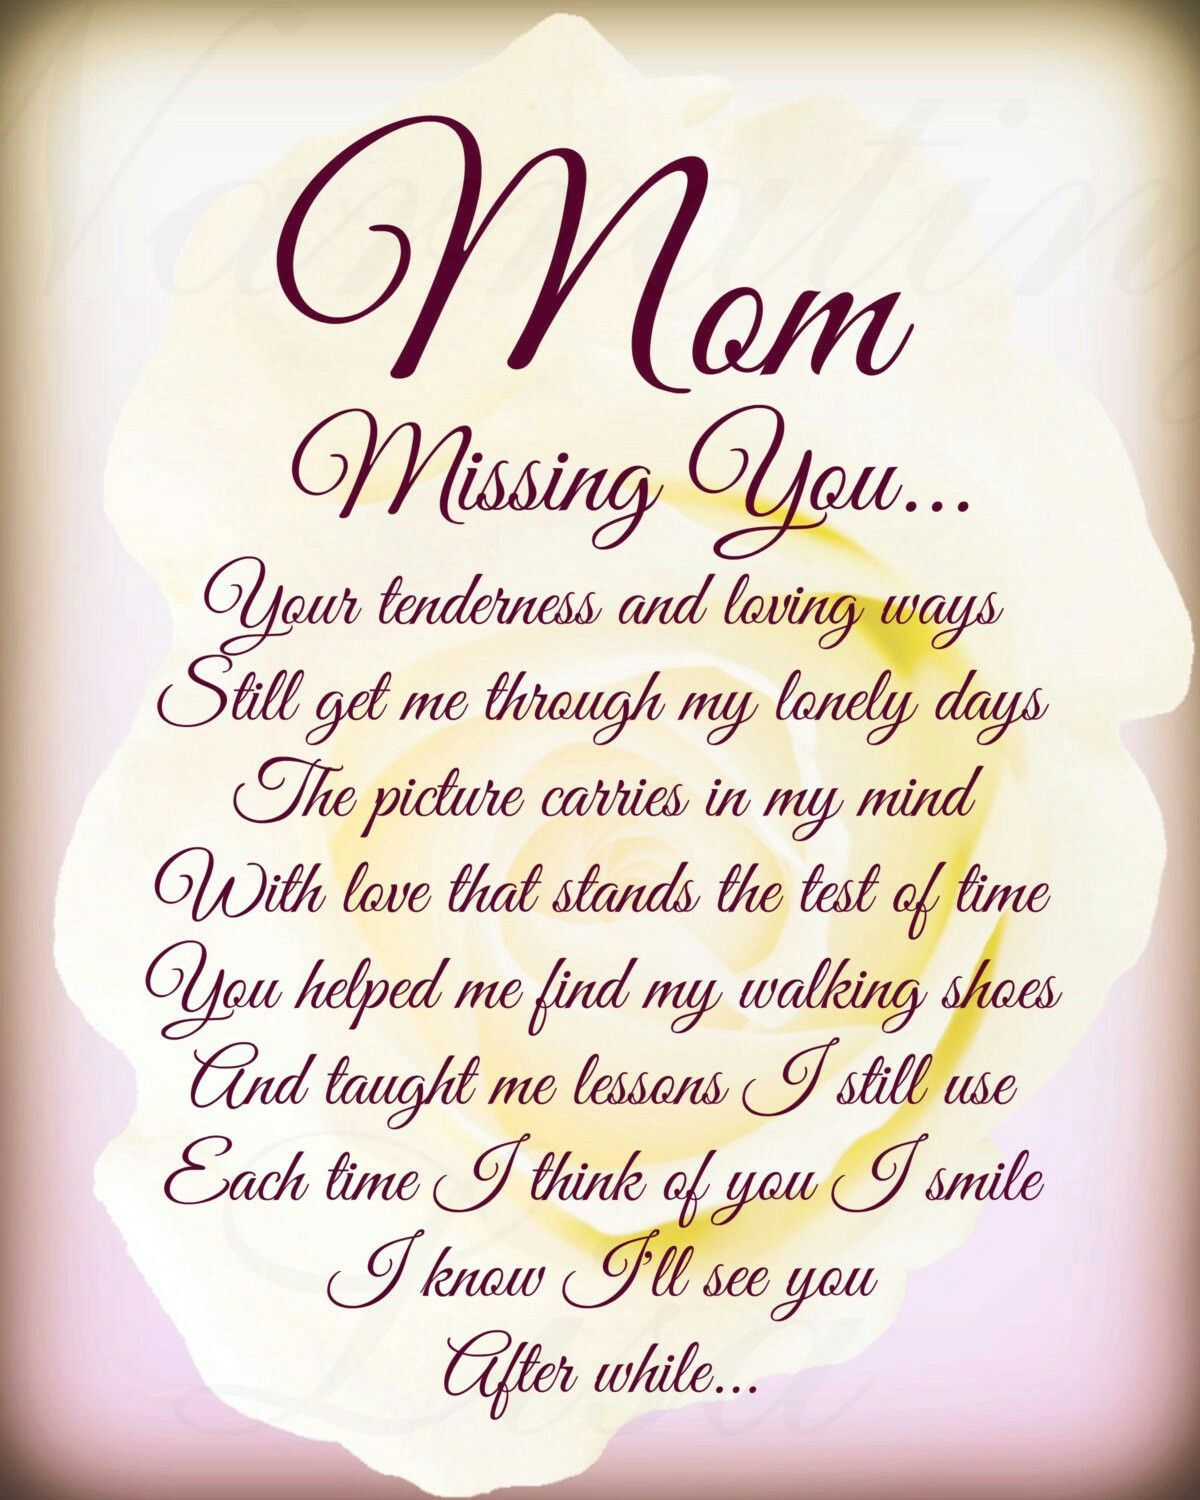 Pin by arvinda kathrani on miss you, memories Mom in